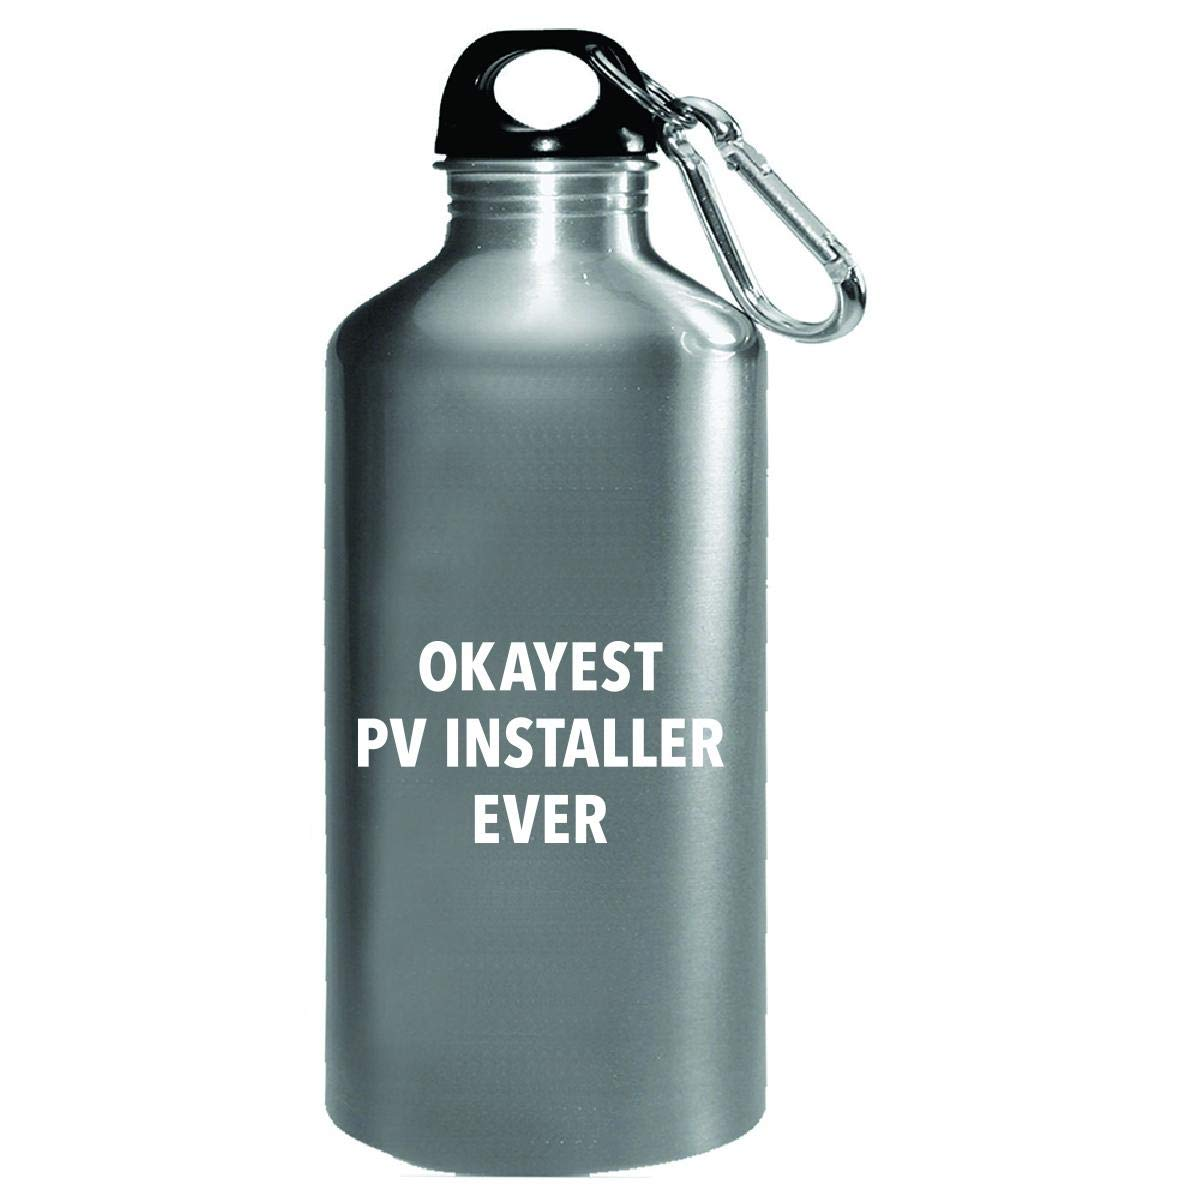 Okayest Pv Installer Ever Sarcastic Funny Saying Solar Gift - Water Bottle